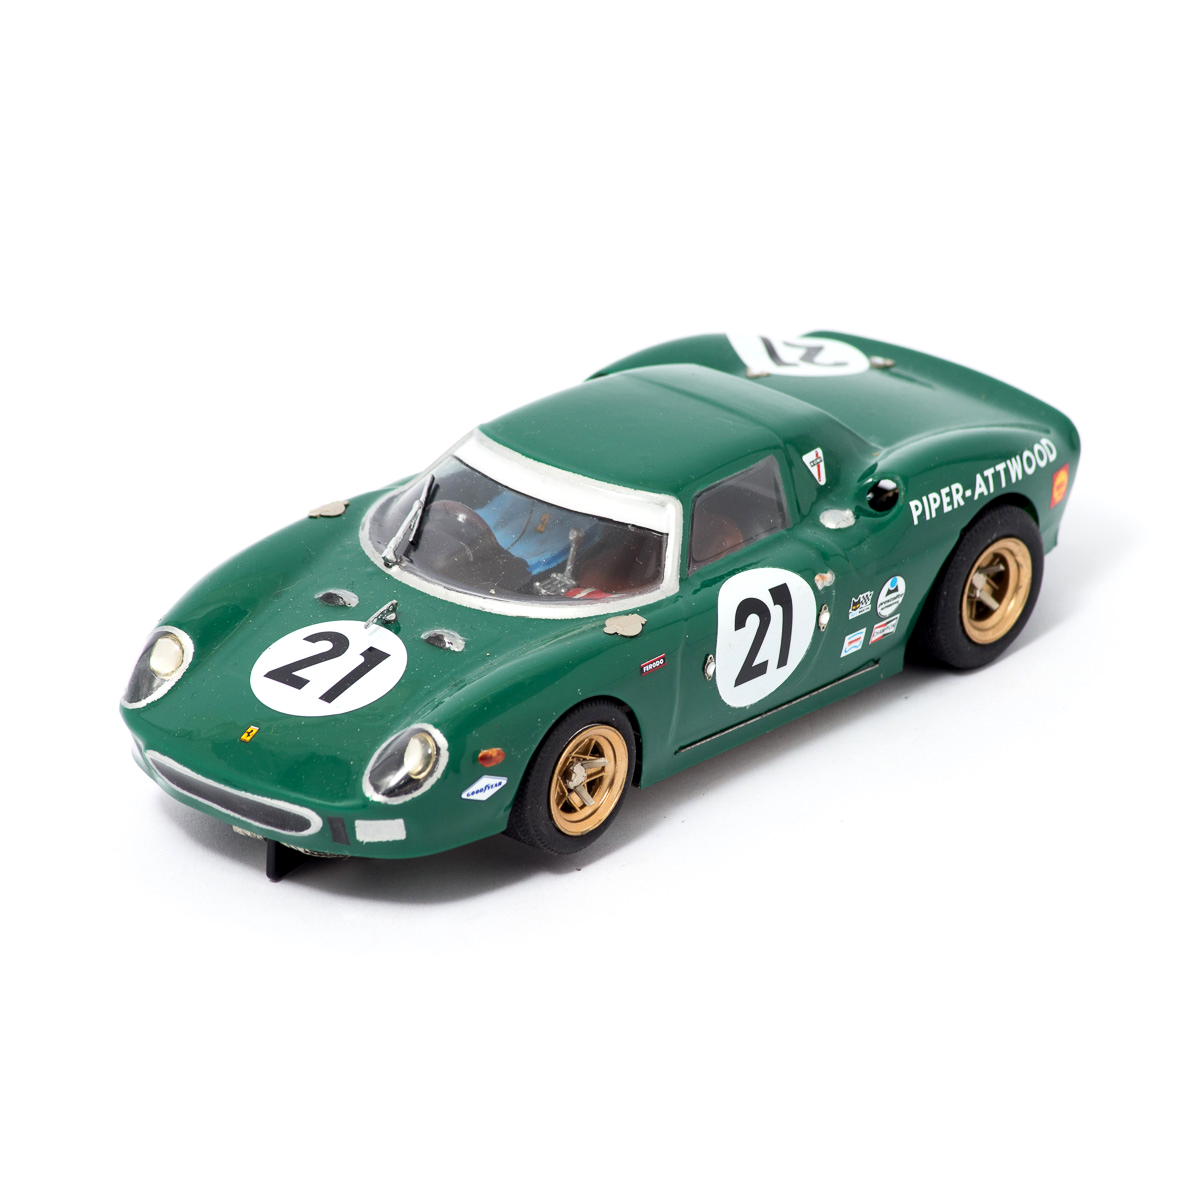 Slot Car Ferrari 250 LM #21 1964 Piper/Atwood 1:24